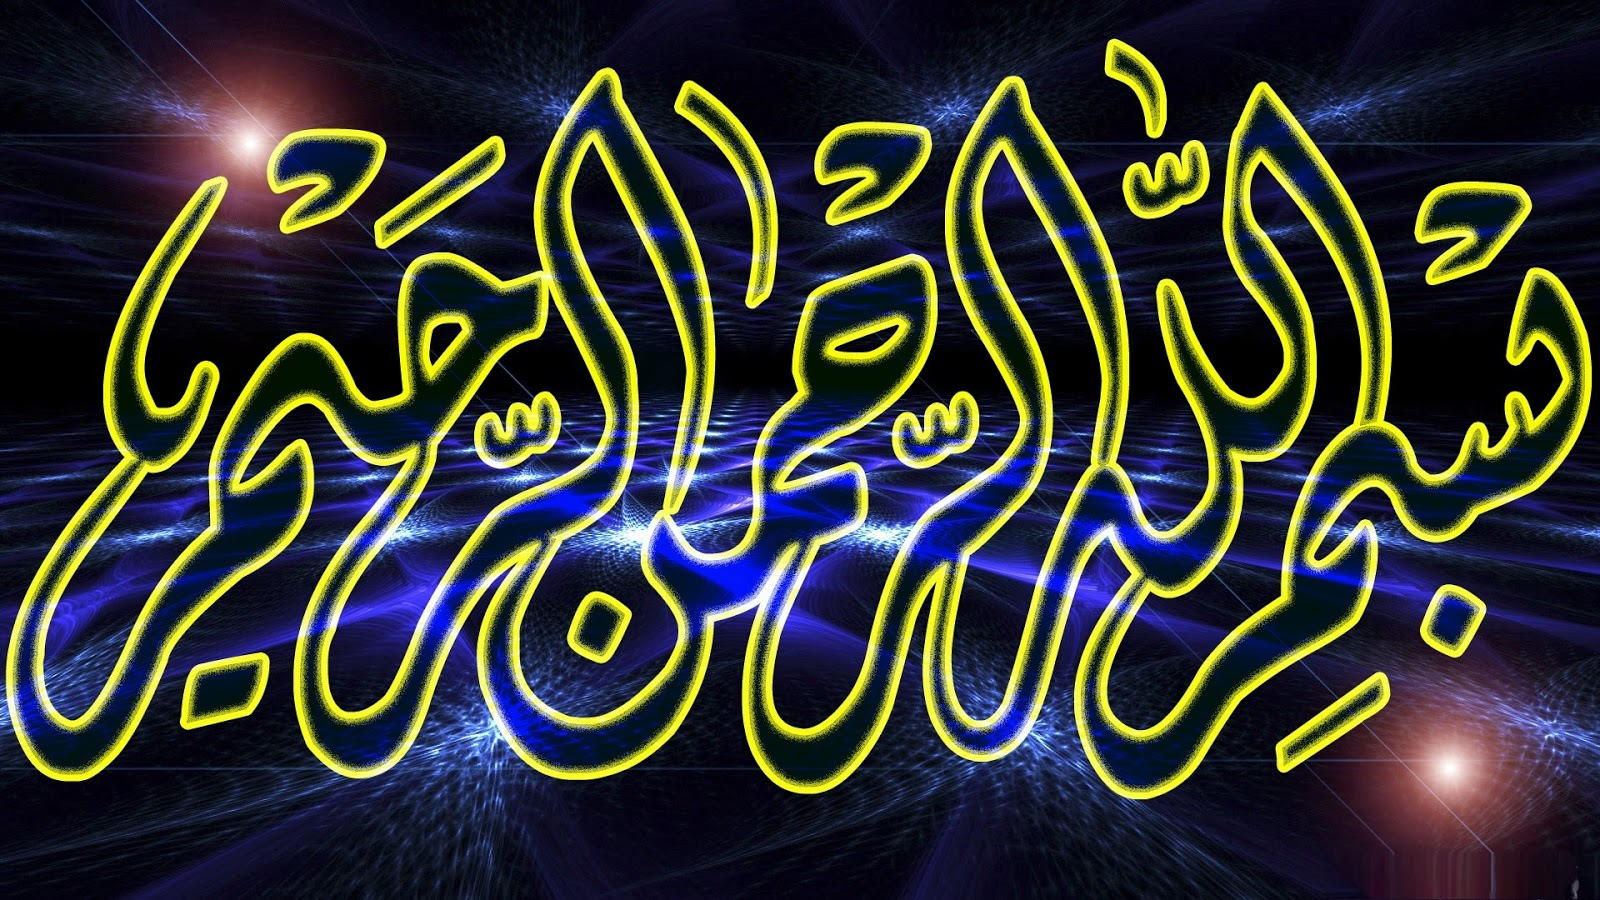 Islamic High Quality Wallpapers December 2012